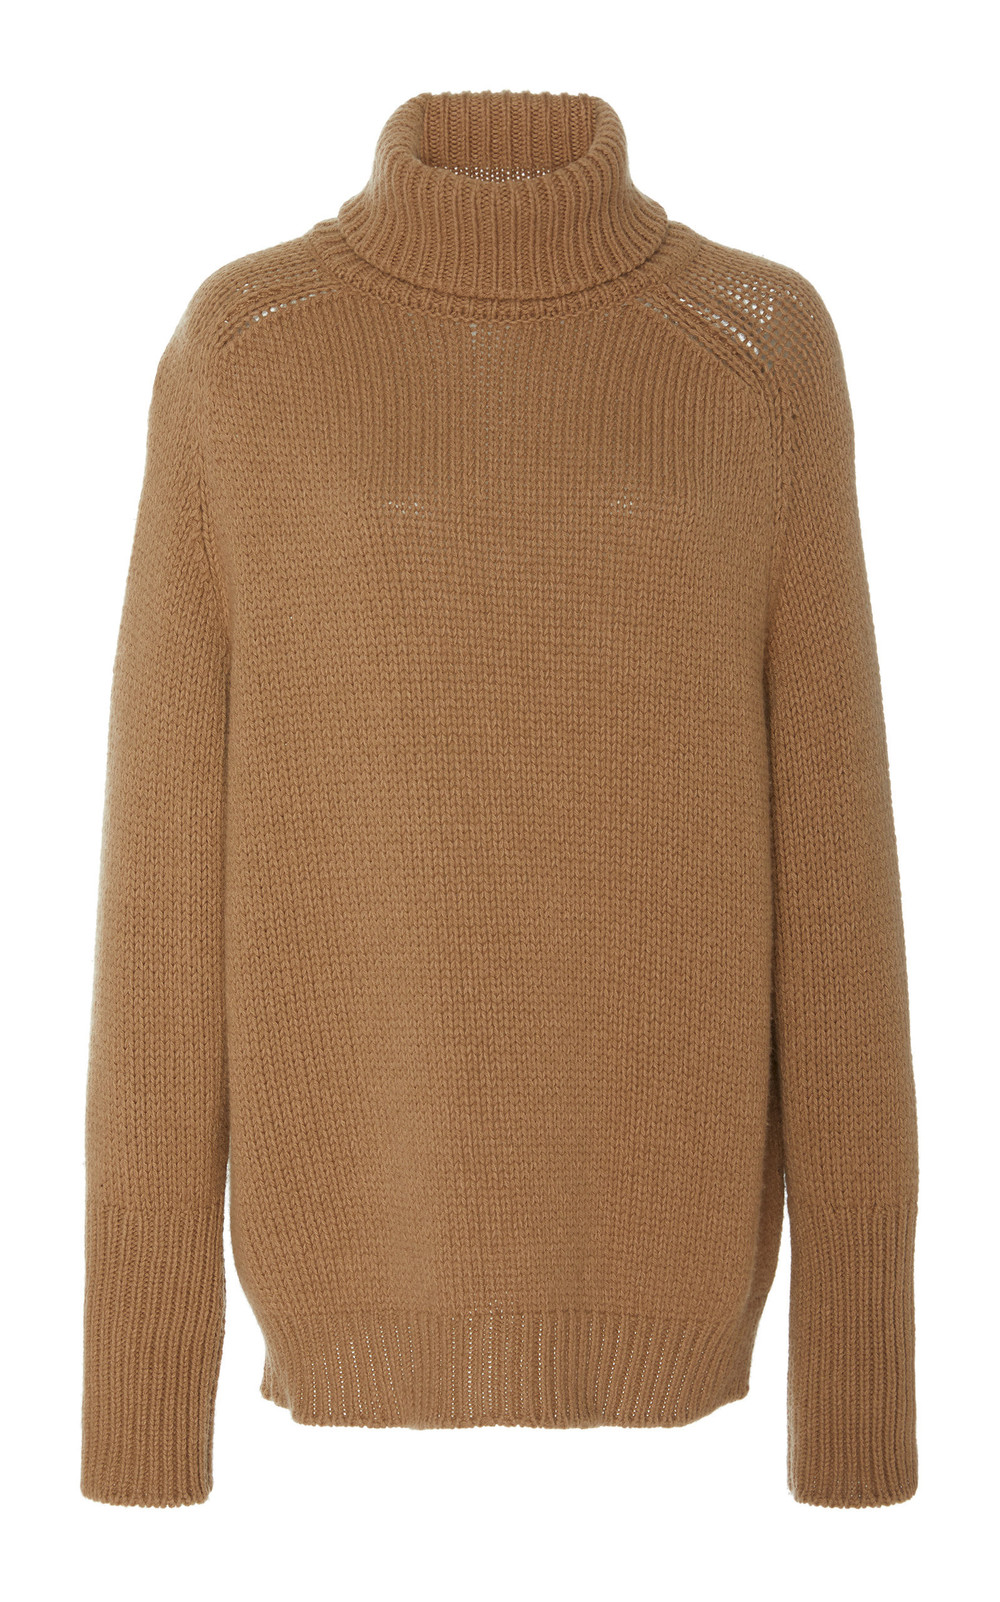 Ralph Lauren Cashmere and Silk-Blend Turtleneck Sweater in neutral